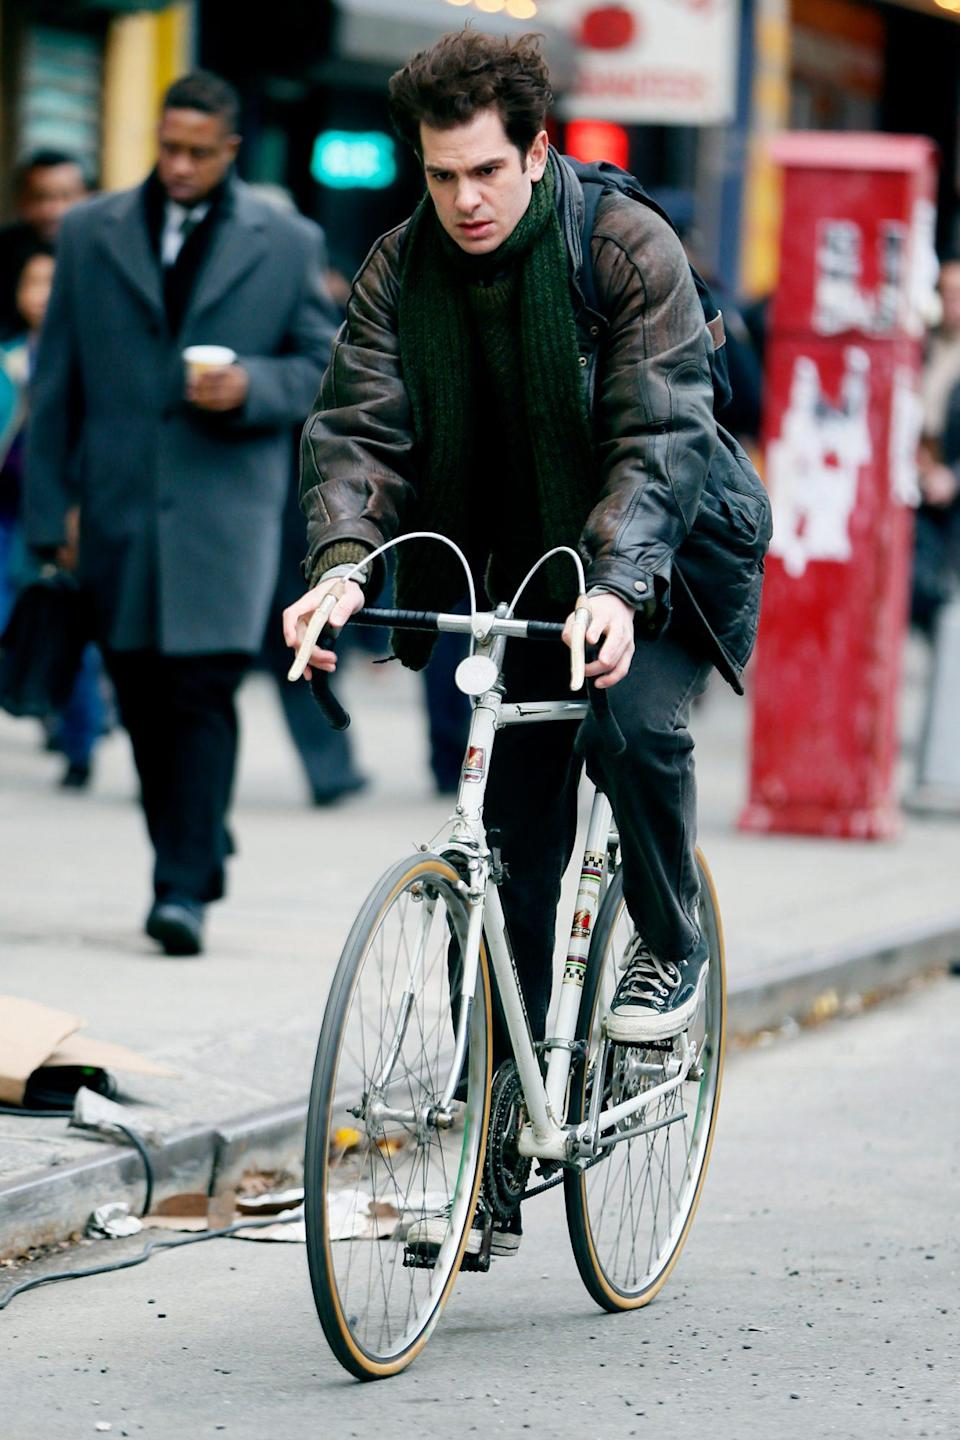 <p>Andrew Garfield rides a bike while filming a scene for Lin Manuel Miranda's <i>Tick, Tick, Boom</i> in N.Y.C. on Tuesday. </p>